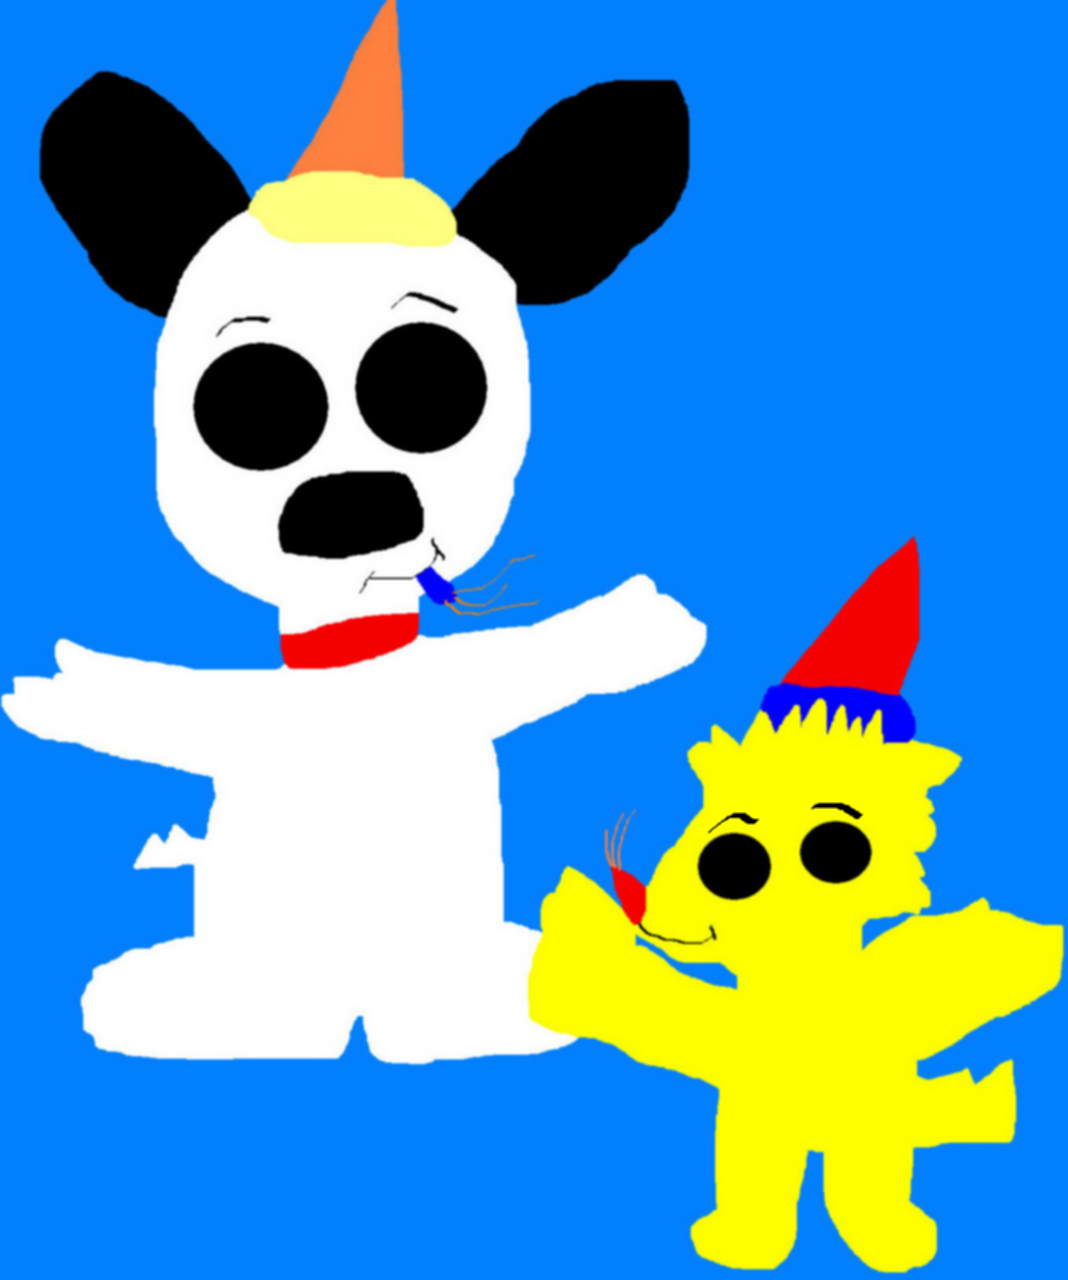 POP Woodstock Gives POP Snoopy A Birthday Lift MS Paint by Falconlobo